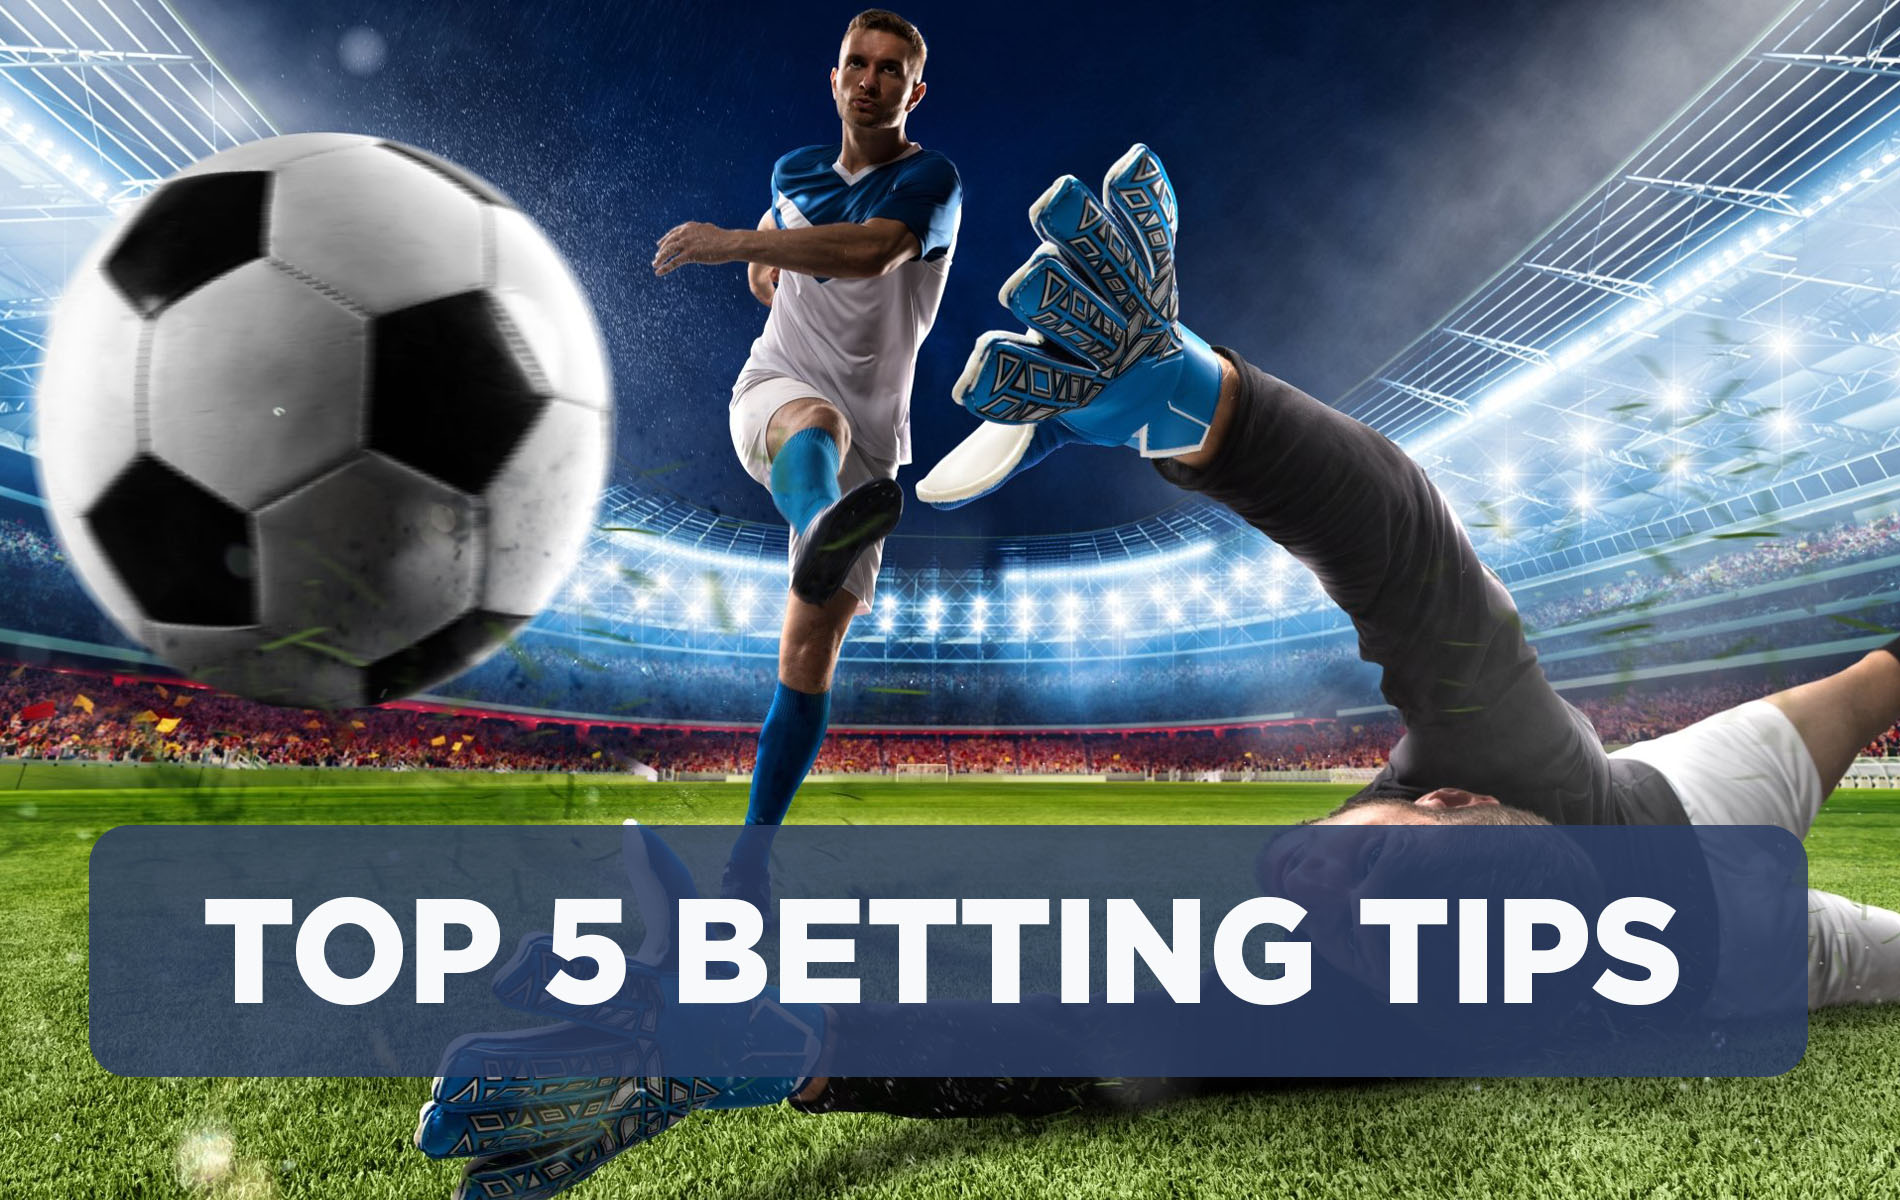 5-best-tips-to-help-you-win-soccer-bets-regularly-in-ghana-tw48m